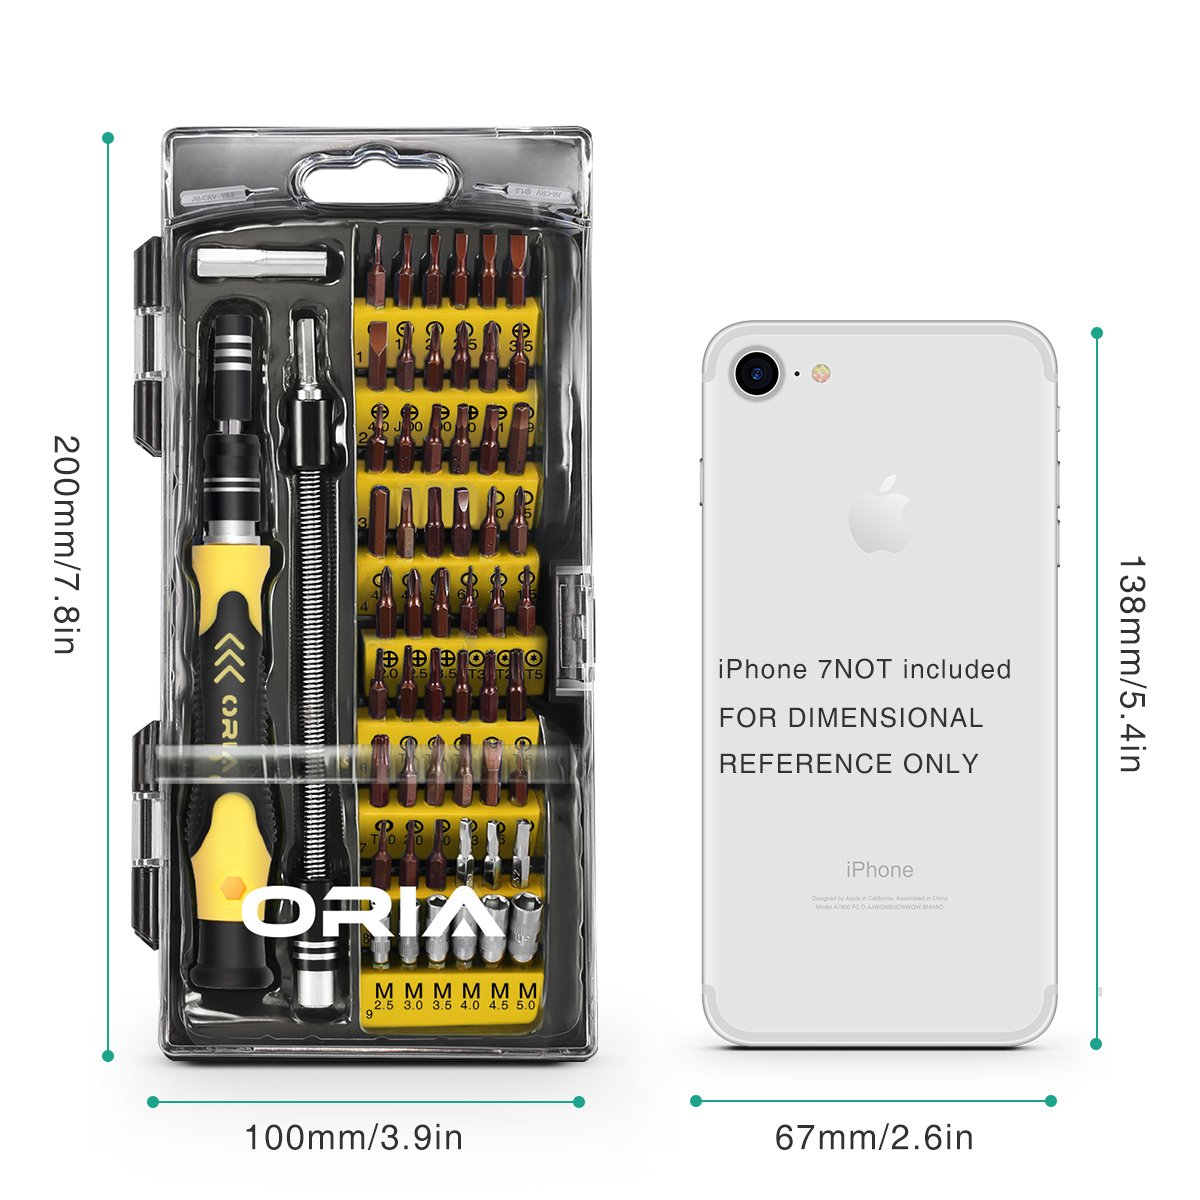 Screwdriver Kit with Portable Bag for 8 8 Plus// Game Console// Tablet// PC// Mac-book and Other Electronics ORIA Precision Screwdriver Set 86-in-1 Magnetic Repair Tool Kit